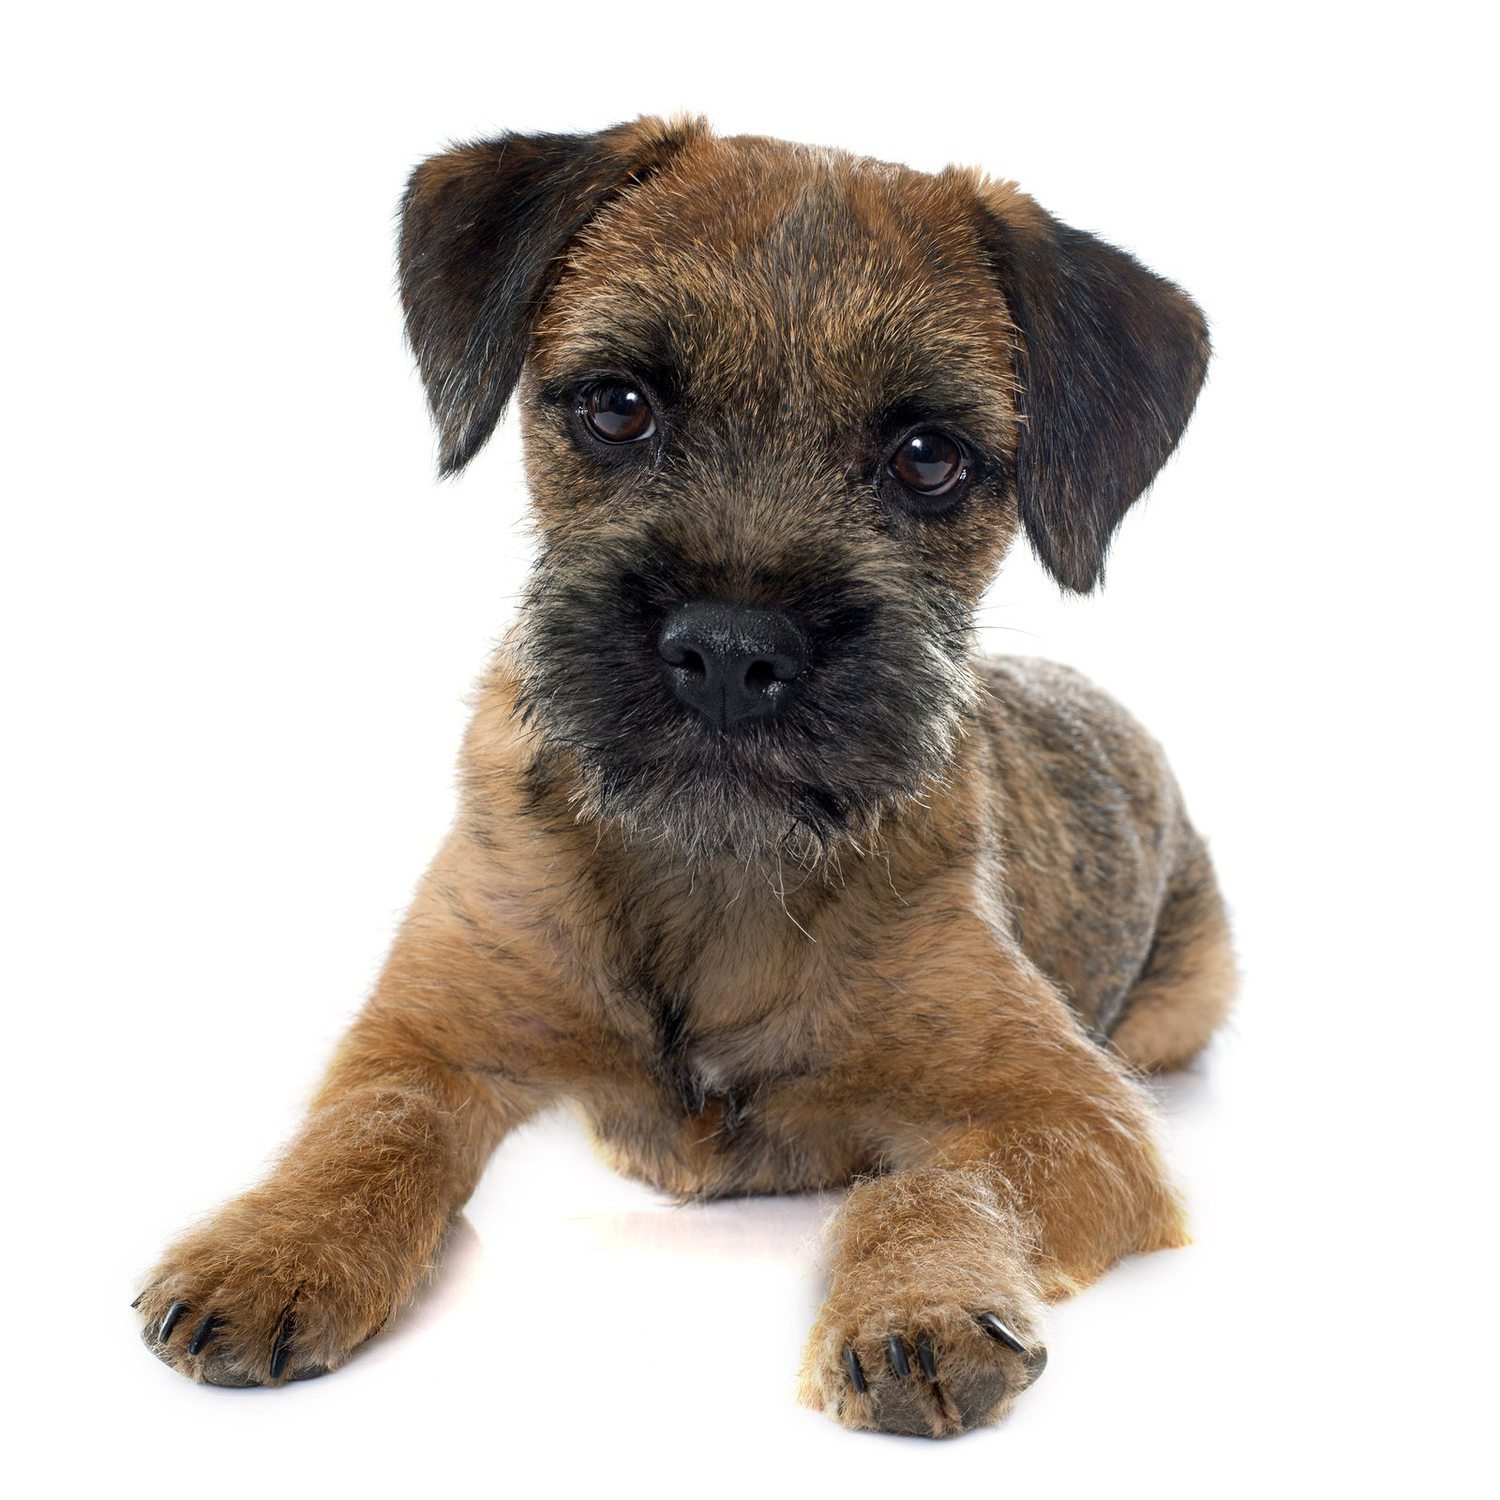 Medium Dog Breeds Short Hair